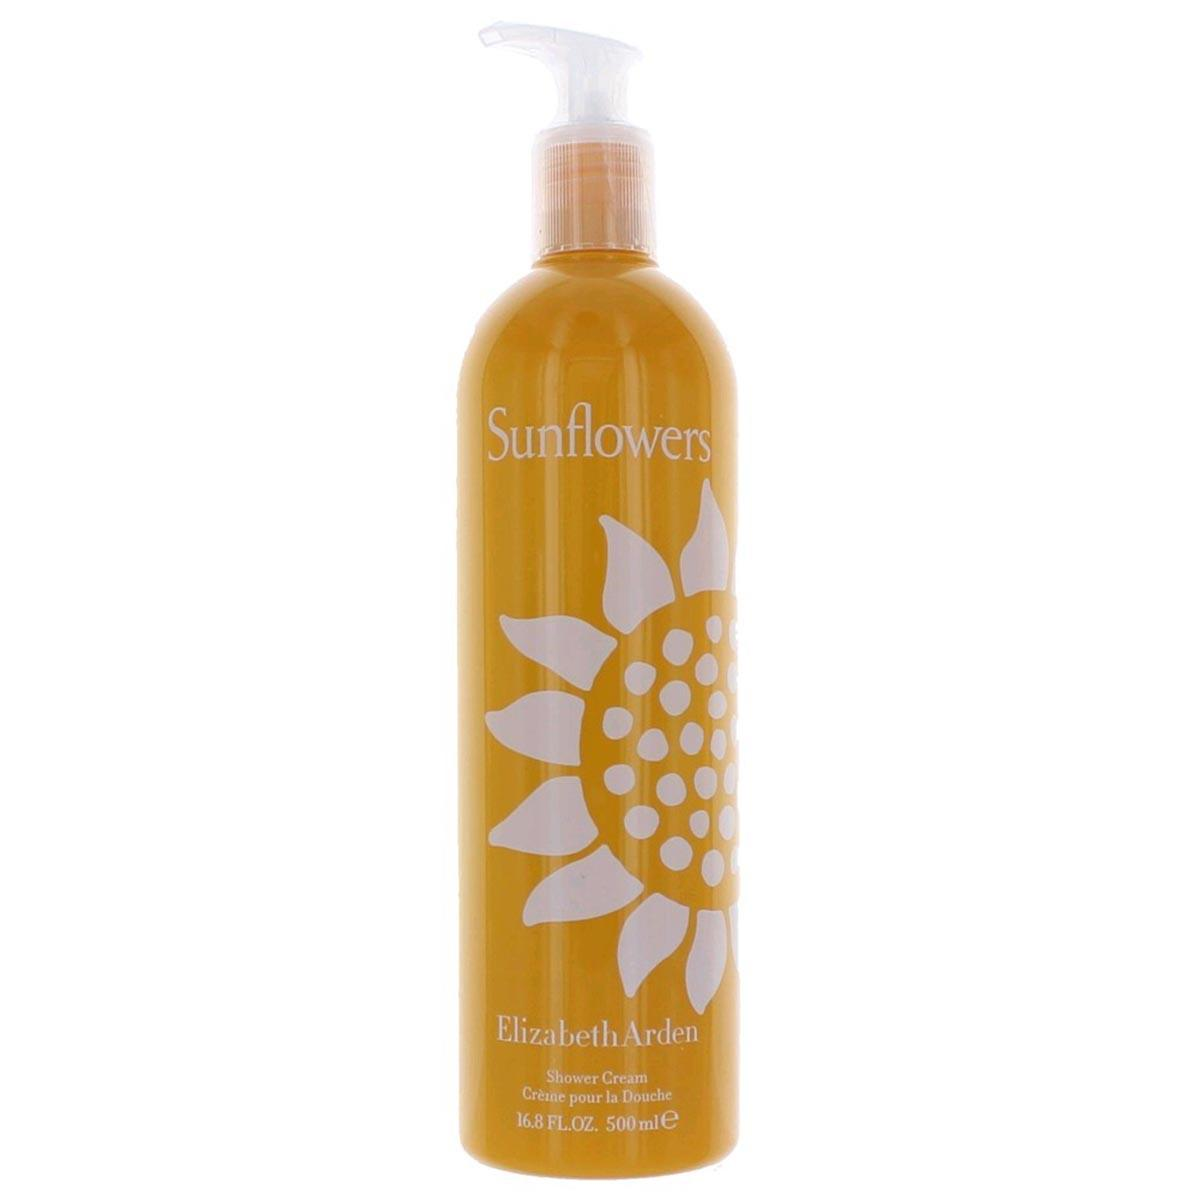 Elizabeth arden Sunflowers Shower Gel Cream 500 ml